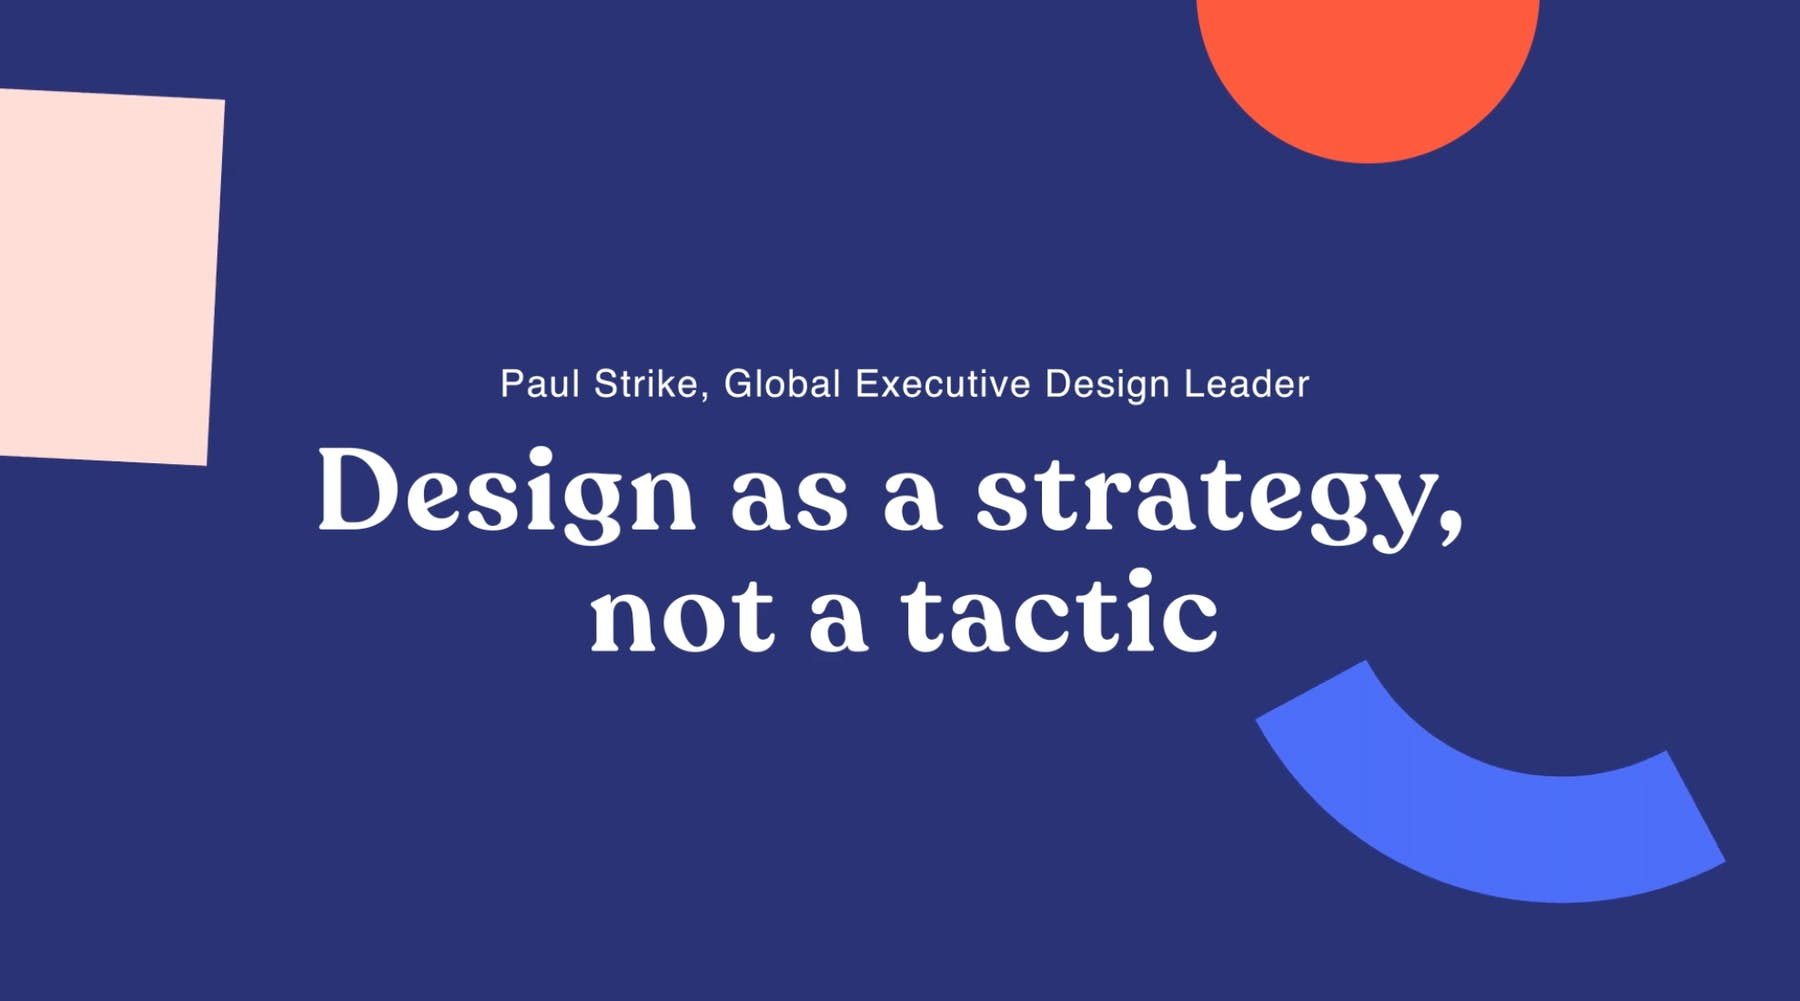 design as a strategy, not a tactic